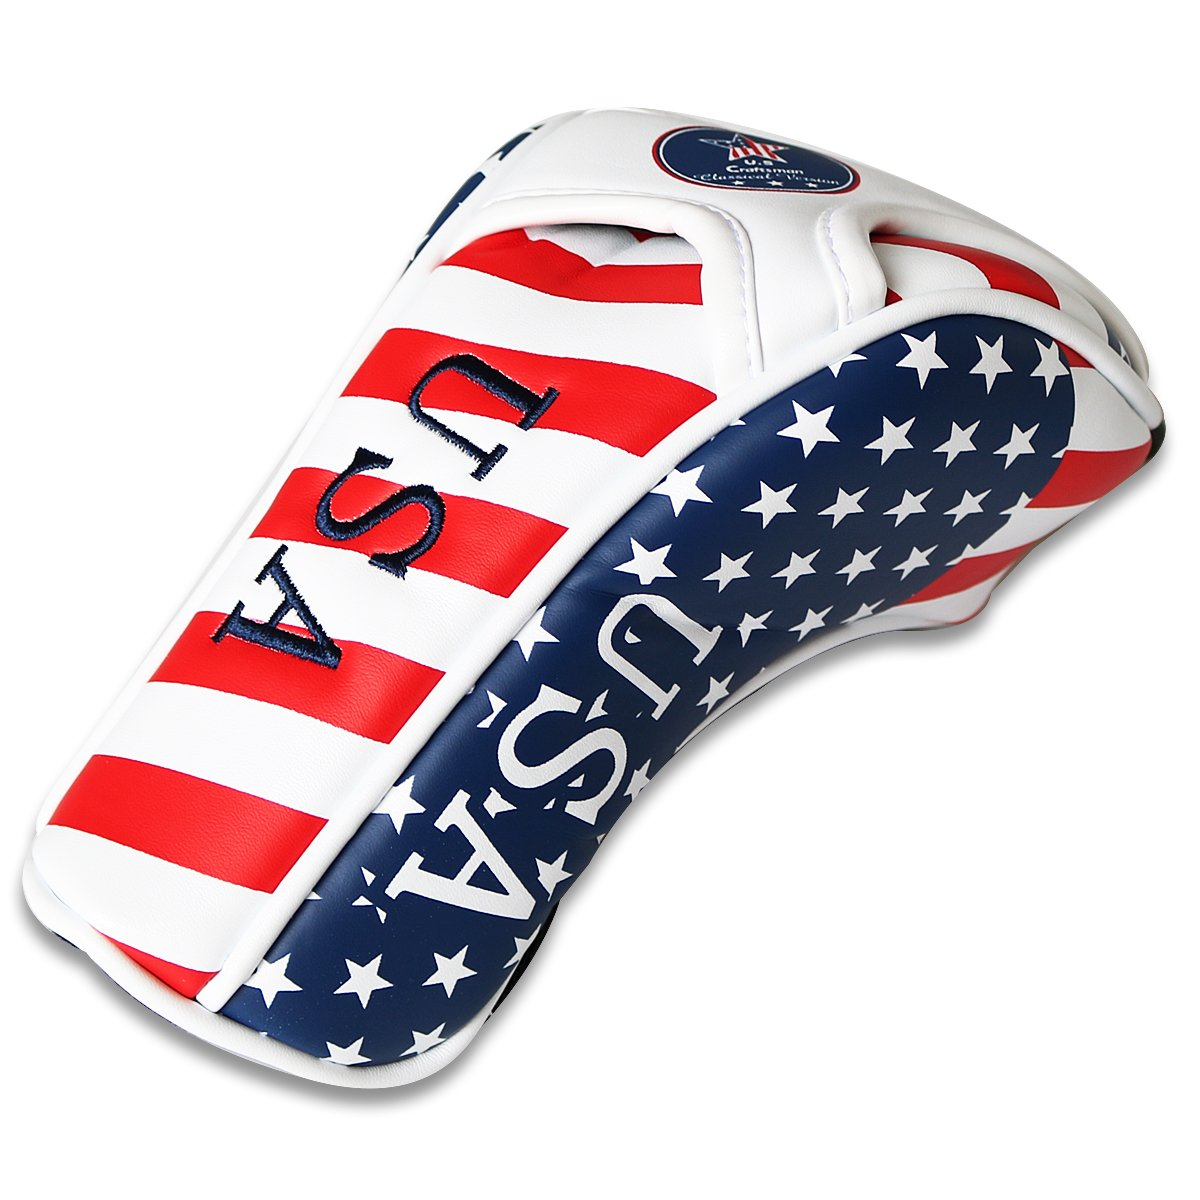 Craftsman Golf Stars & Stripes American USA US Flag Fairway Wood Headcover Head Cover Replacement For Titleist Taylormade Callaway Mizuno Cobra Ping Adams